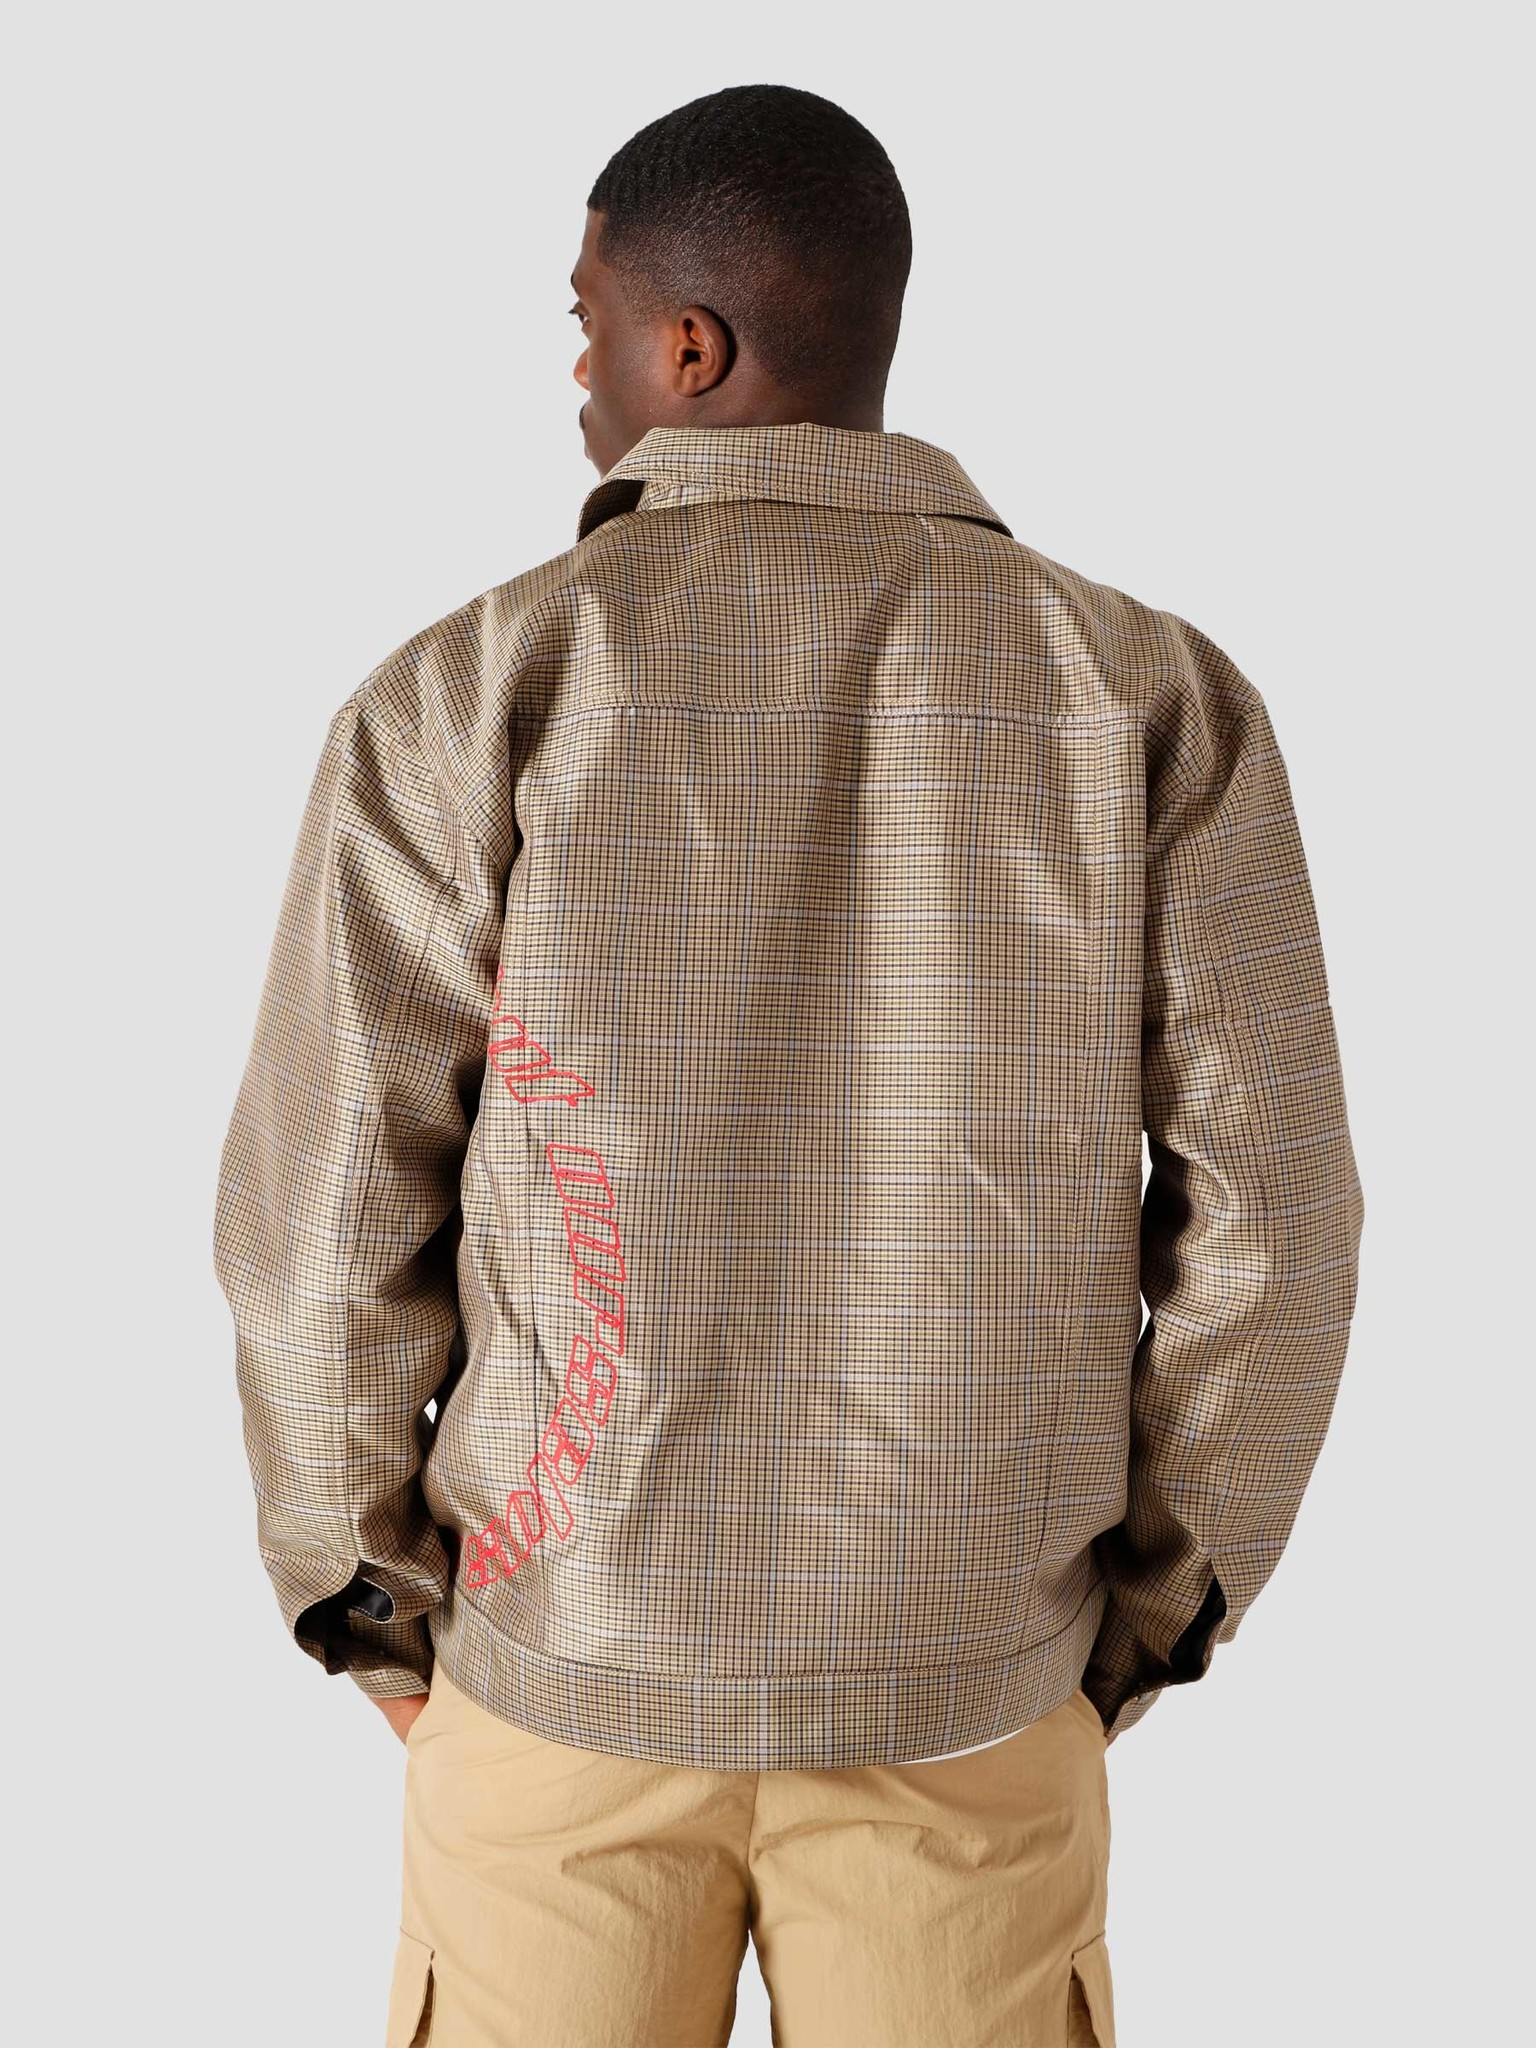 Daily Paper Daily Paper Kardy Jeans Jacket Sand Check 2111112